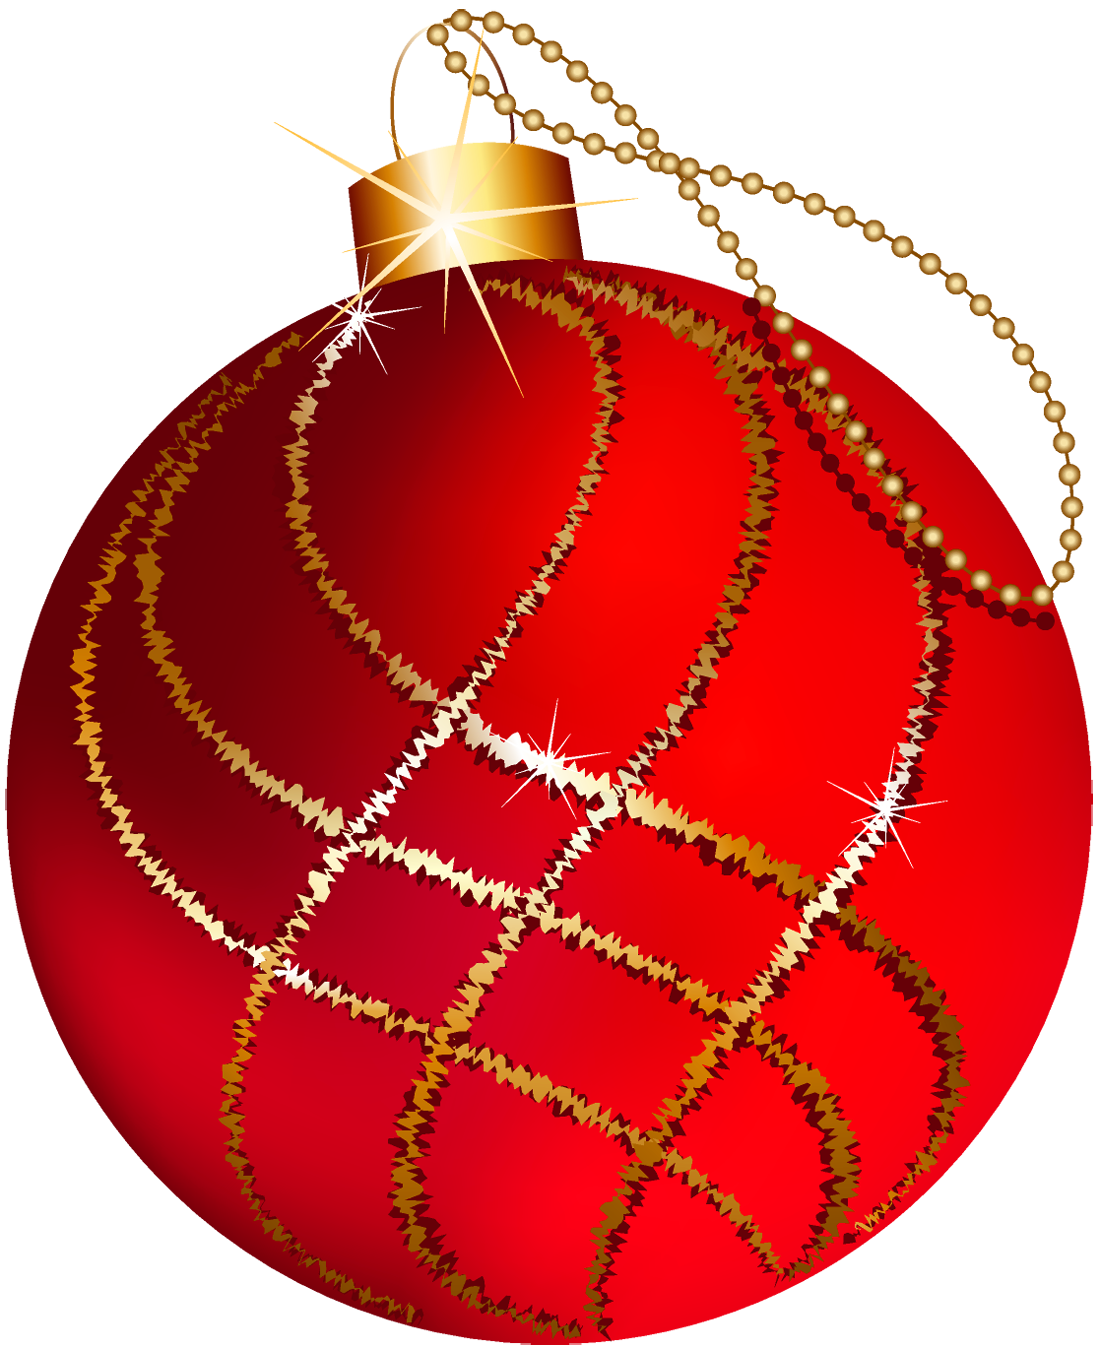 free christmas silver and gold ornament clipart 2x4 ...